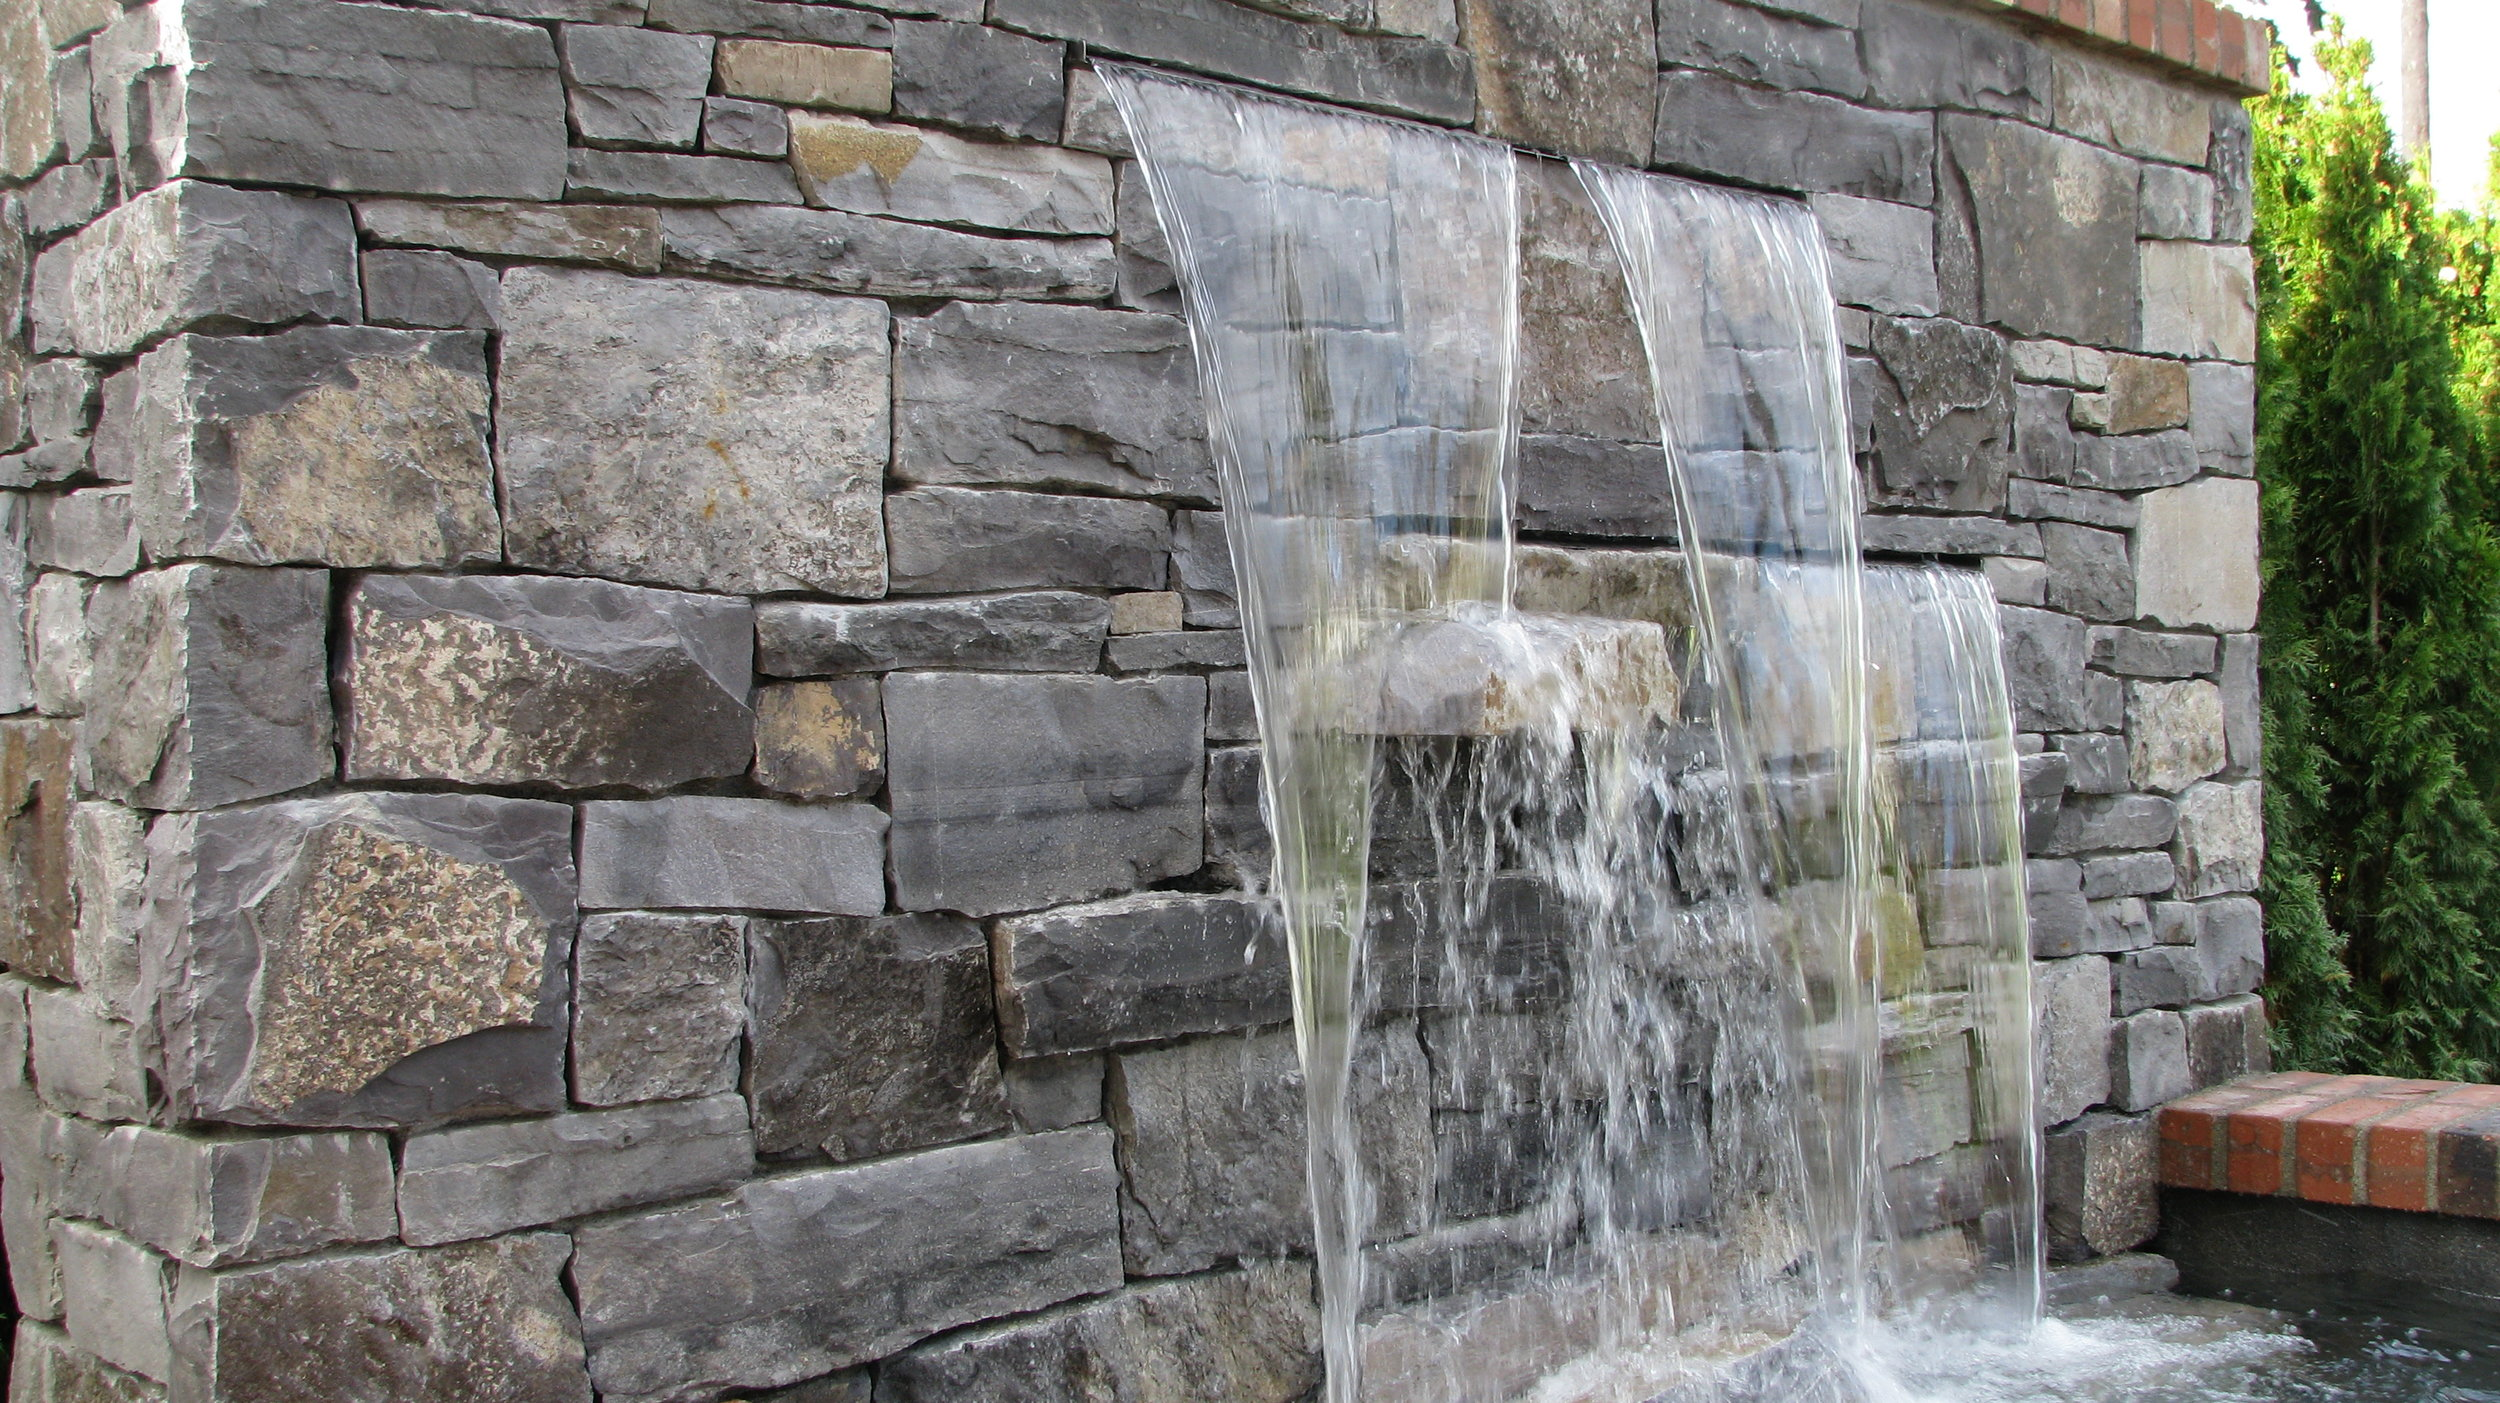 waterfeature5.JPG